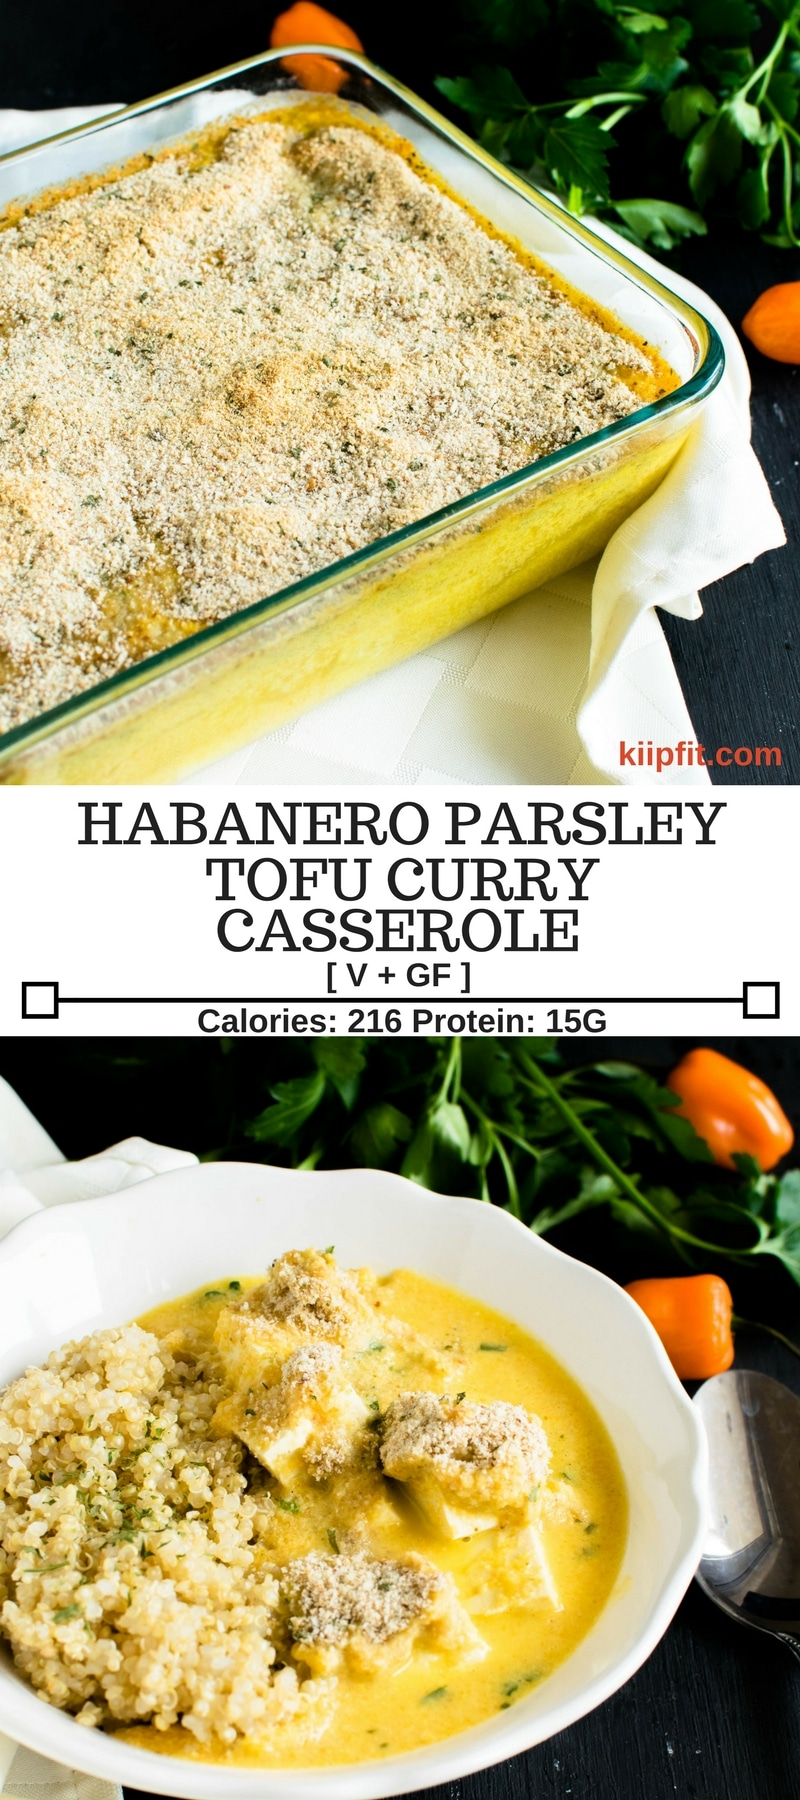 Habanero Parsley Tofu Curry Casserole is a spicy and savory fusion dish with a smooth texture. It is satisfying, protein rich and a make ahead dish [ Vegan + GF ] kiipfit.com